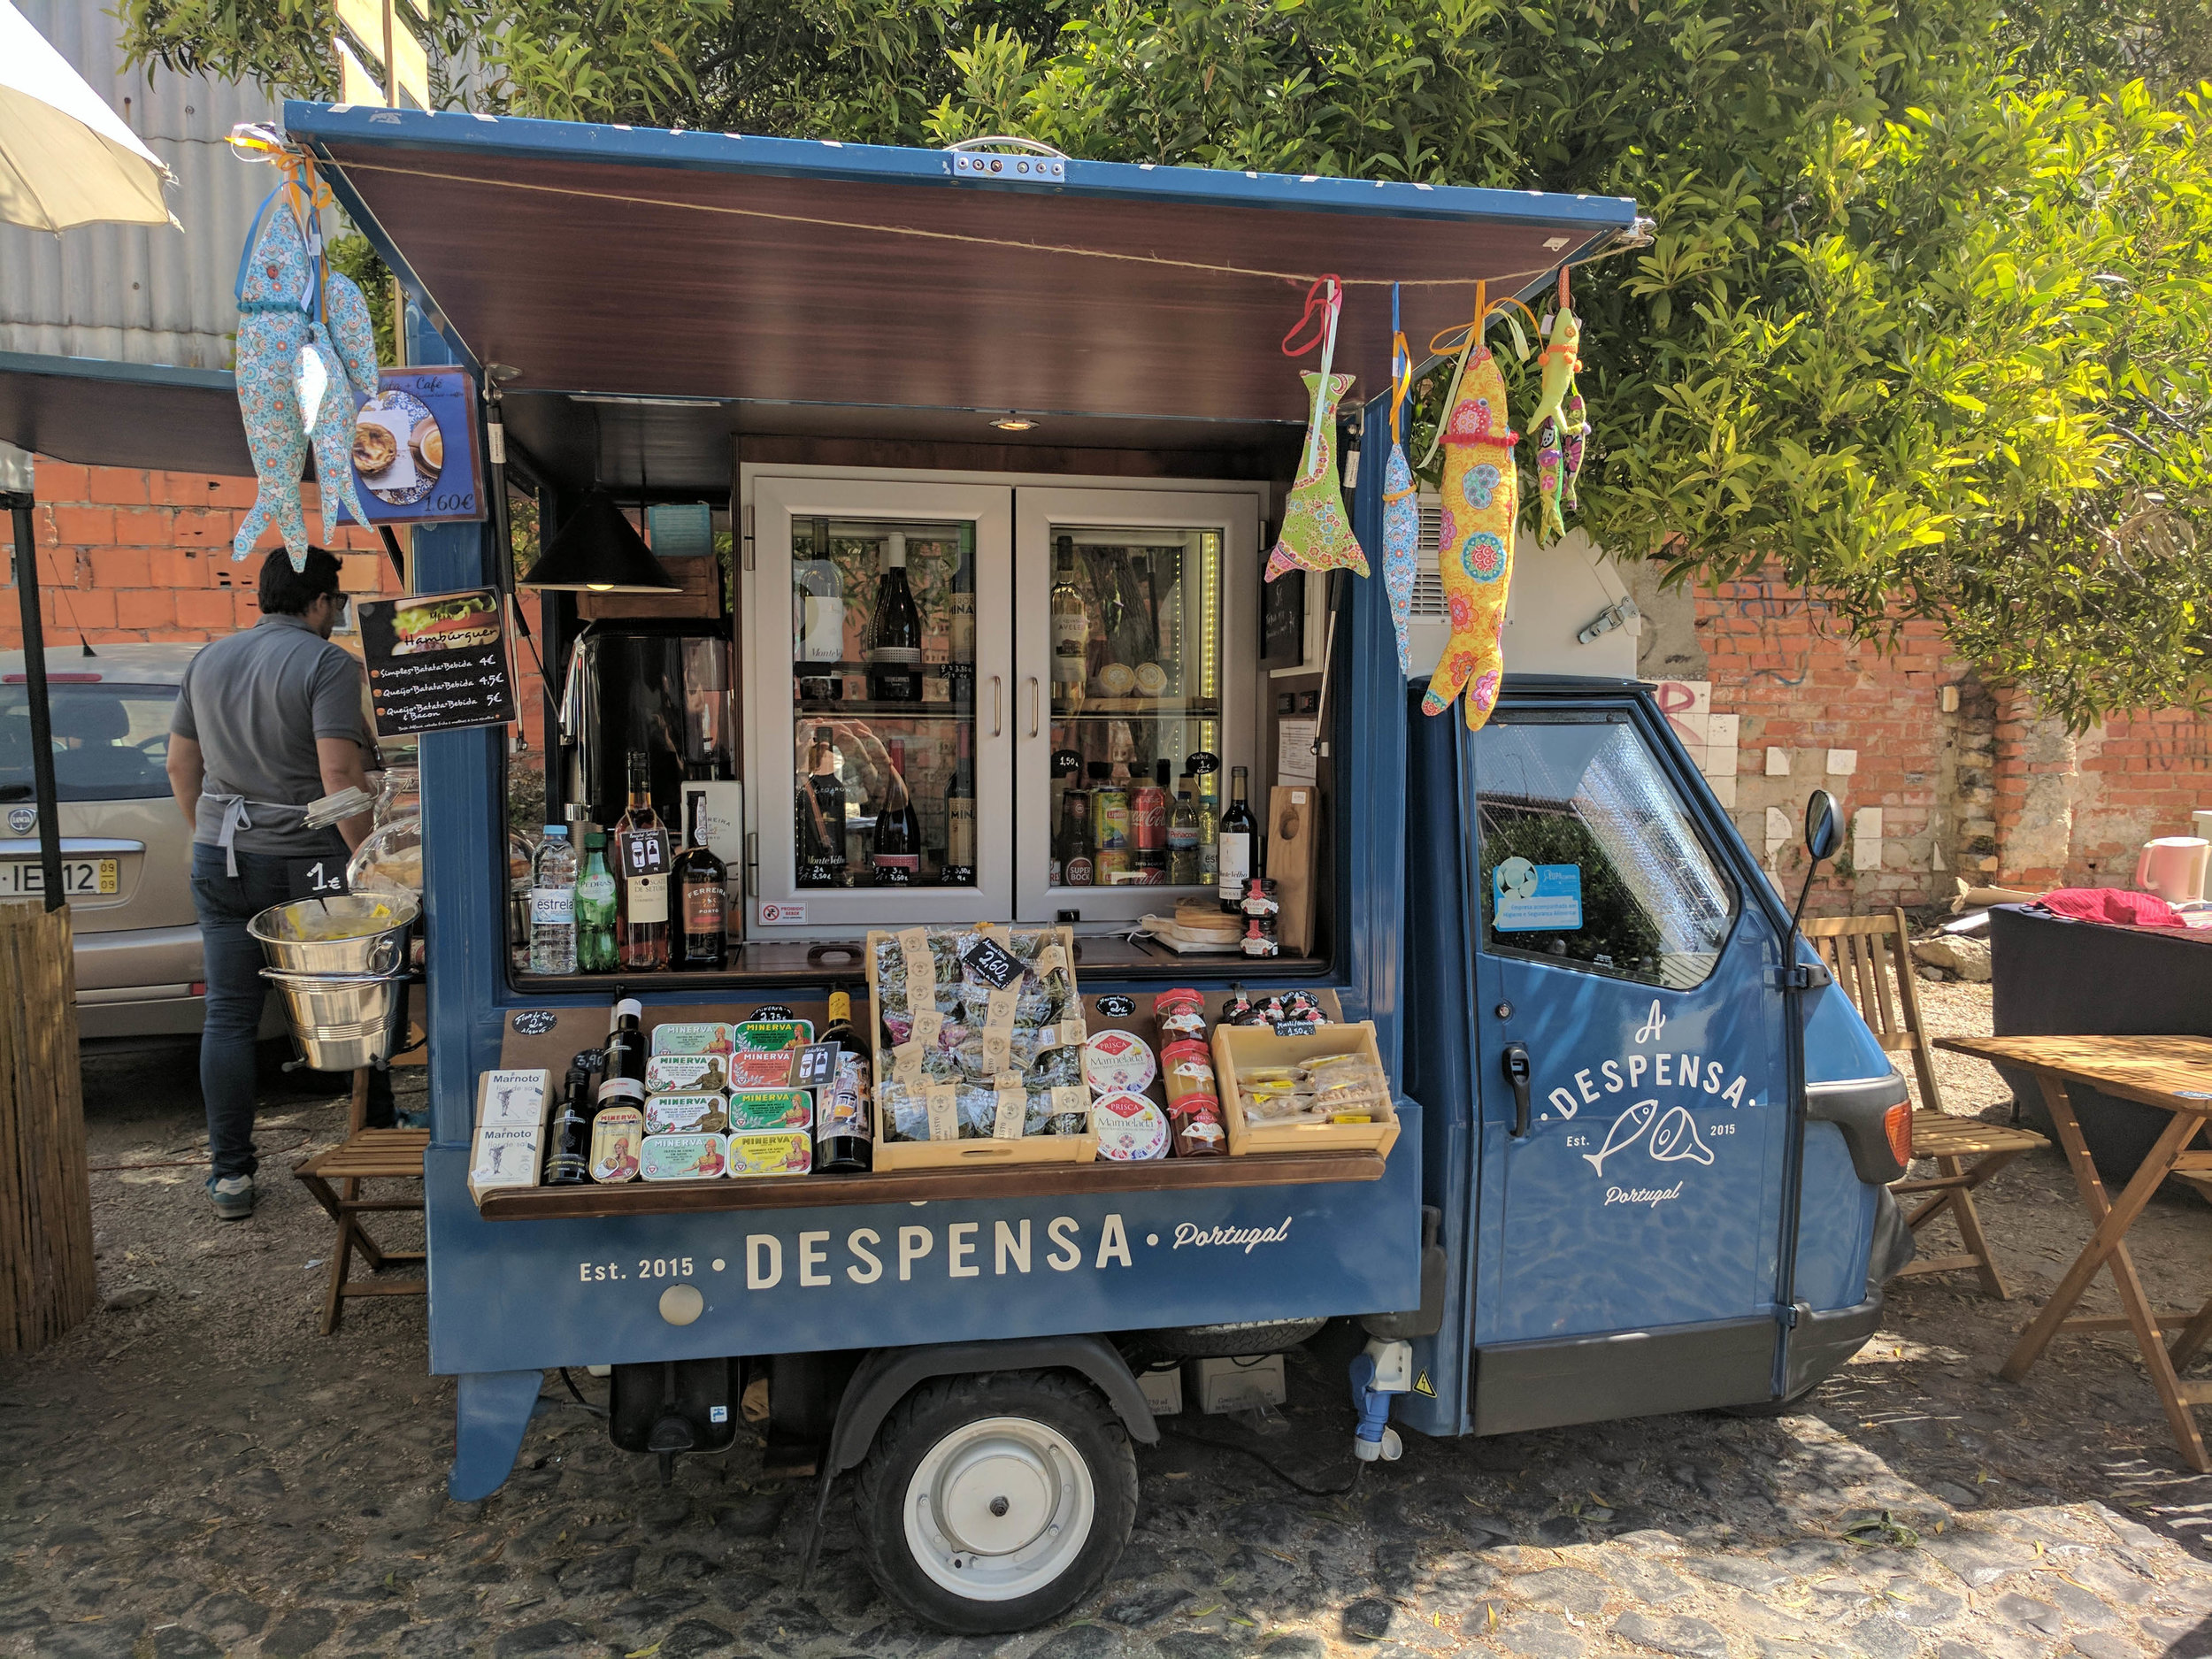 Food trucks and pretentious coffee shops are ubiquitous